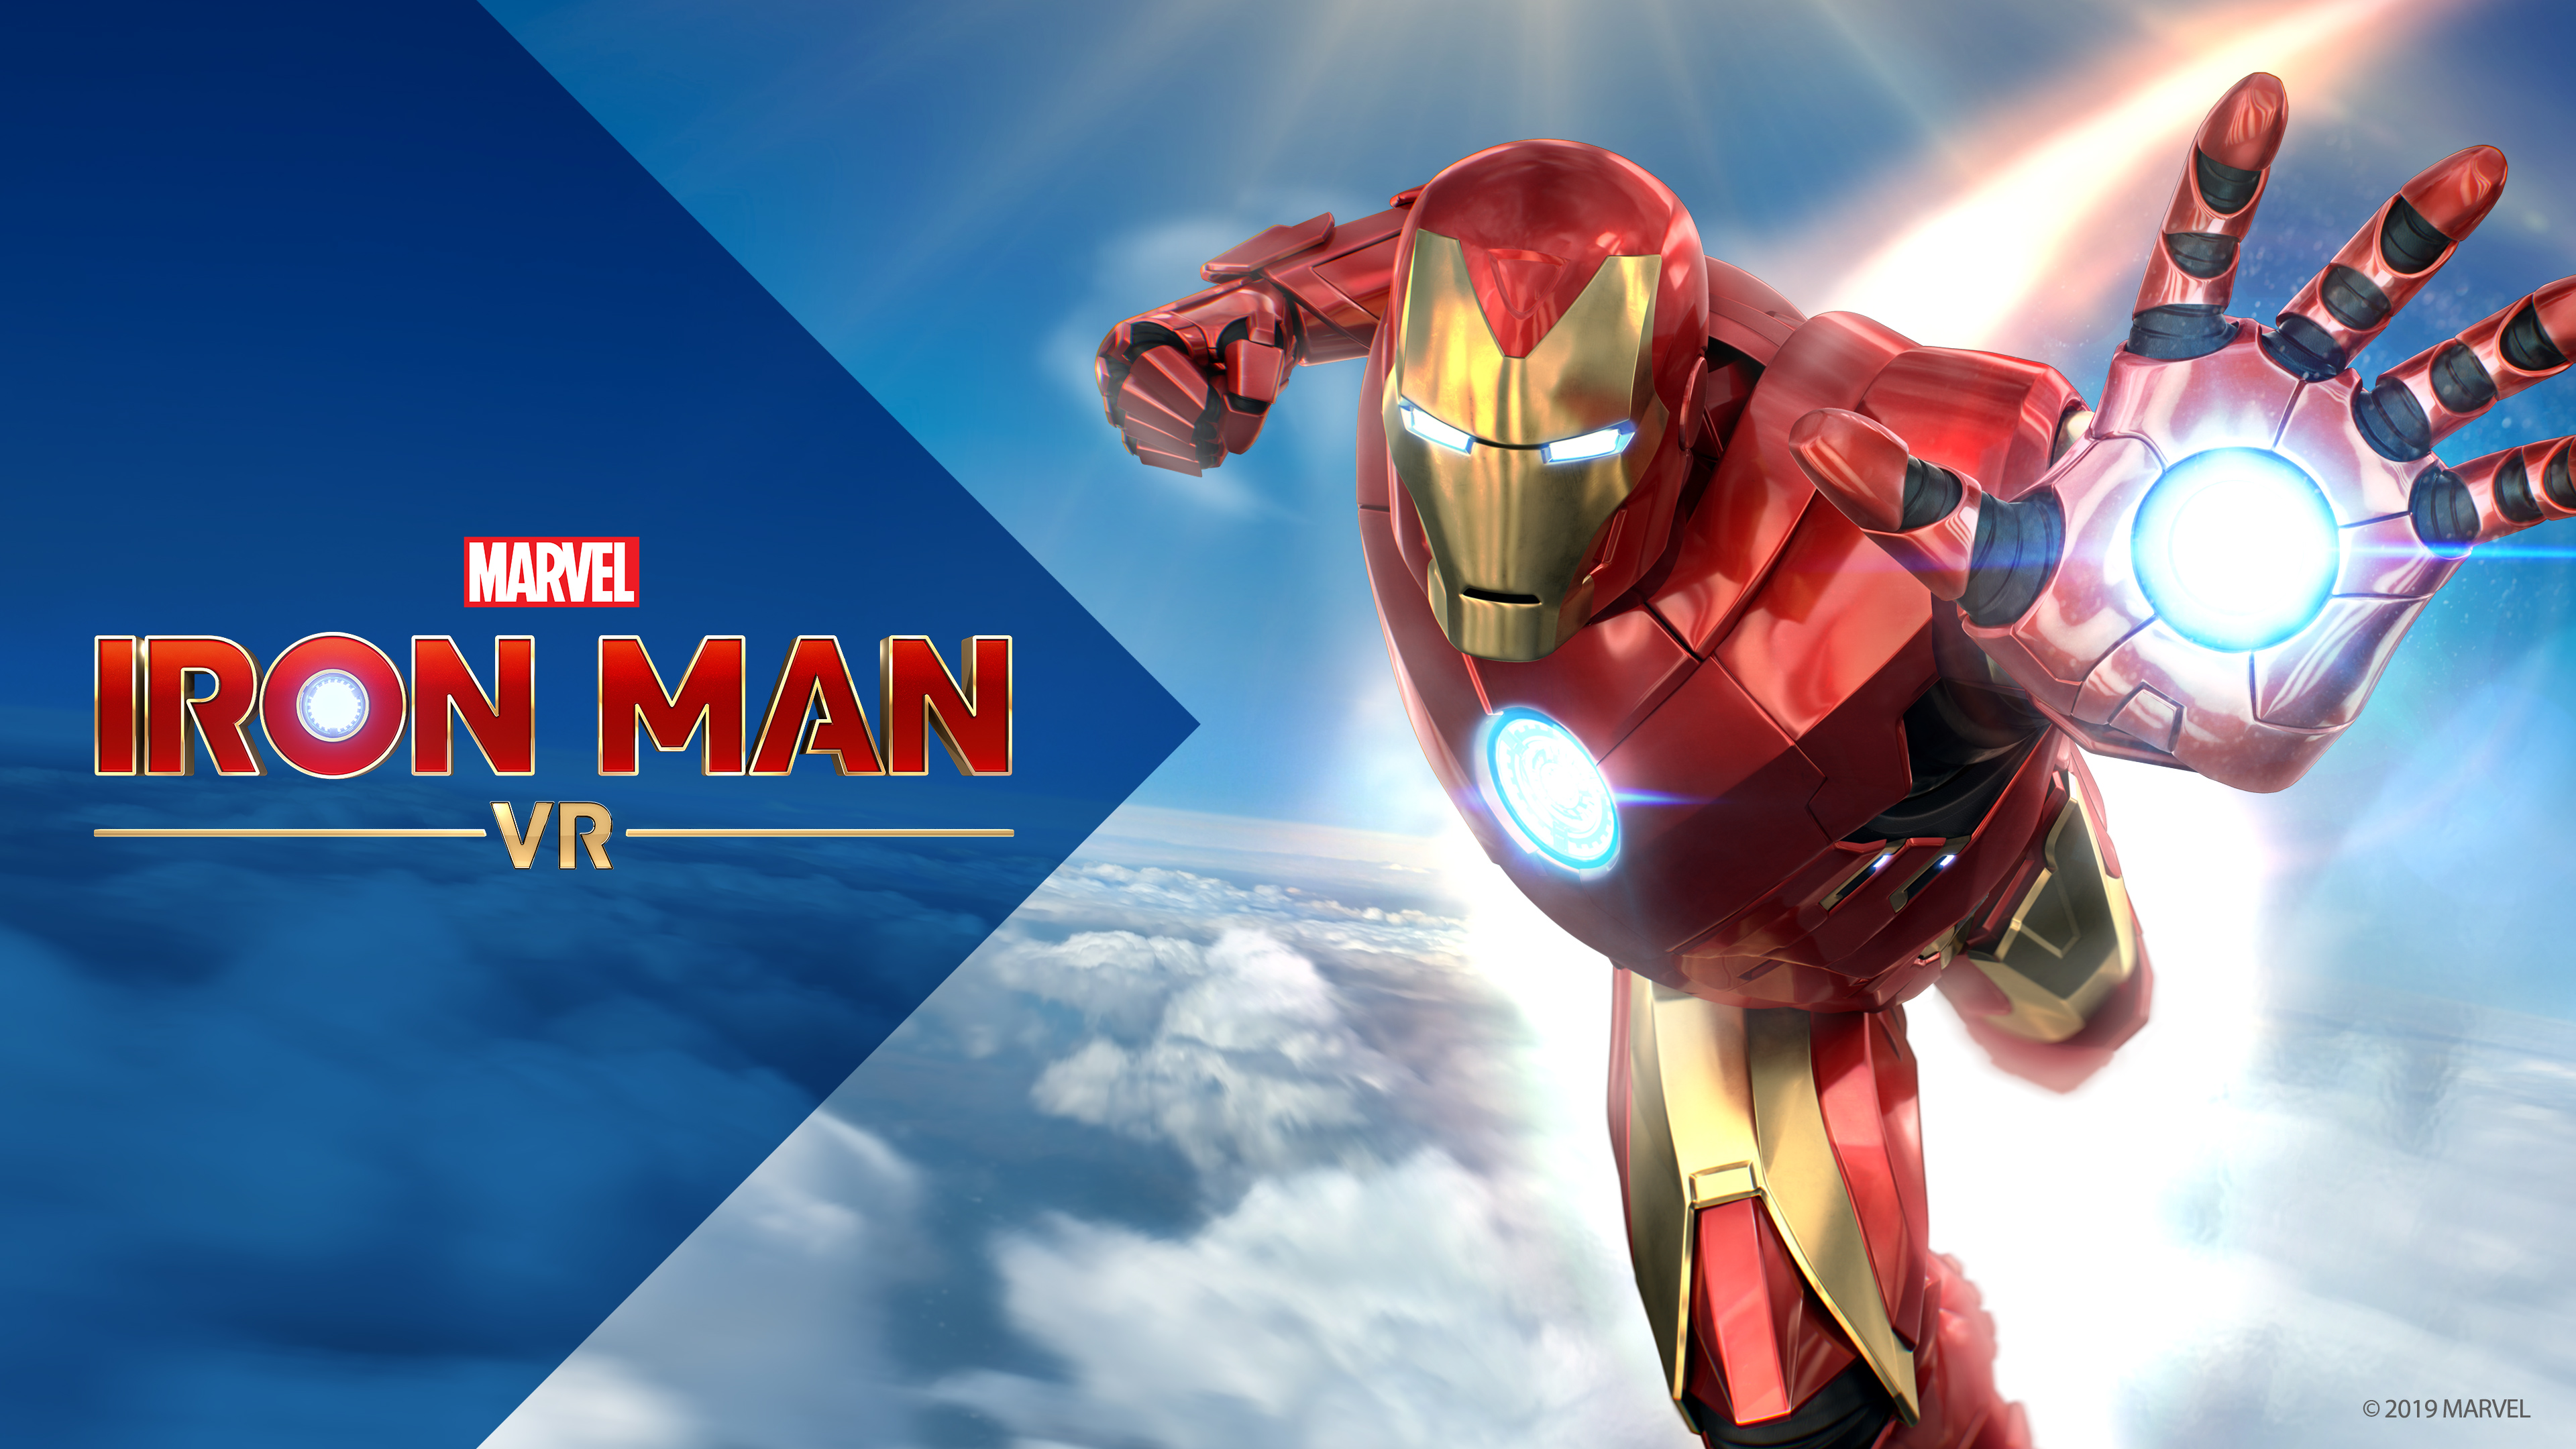 marvel iron man vr 1572369357 - Marvel Iron Man Vr - iron man wallpapers, hd-wallpapers, games wallpapers, 4k-wallpapers